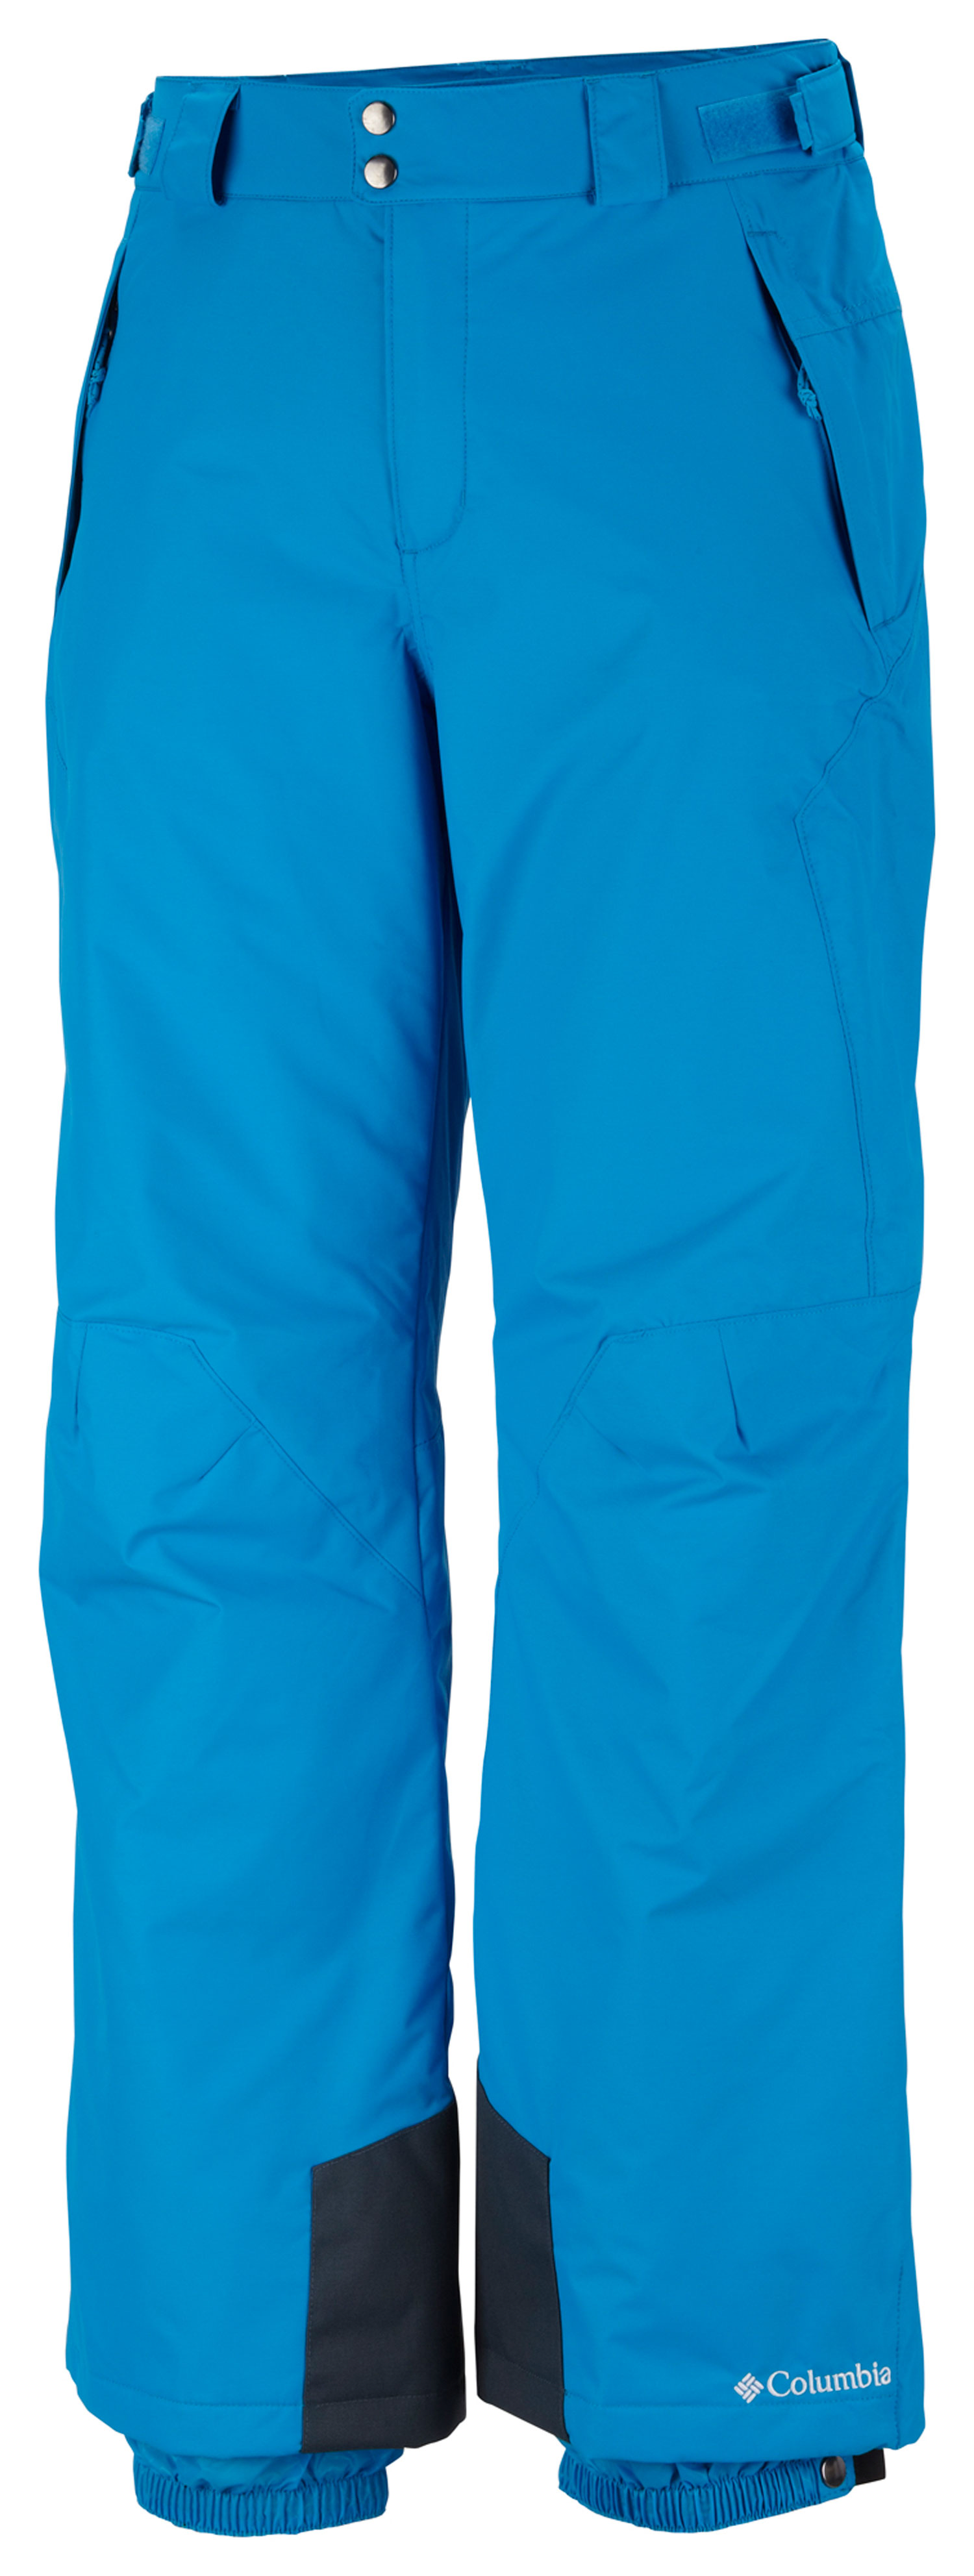 Ski Key Features of the Columbia Bugaboo II Ski Pants: FABRIC Shell: 100% nylon Legacy twill, 100% polyester. Lining: 100% polyester tricot. Insulation: 100% polyester 40g Microtemp insulation. FIT Modern Classic Omni-Tech waterproof/breathable critically seam sealed Adjustable waist tabs Internal adjustable leg gaiter Exterior adjustable waist Reinforced cuff guard Articulated knees - $66.95